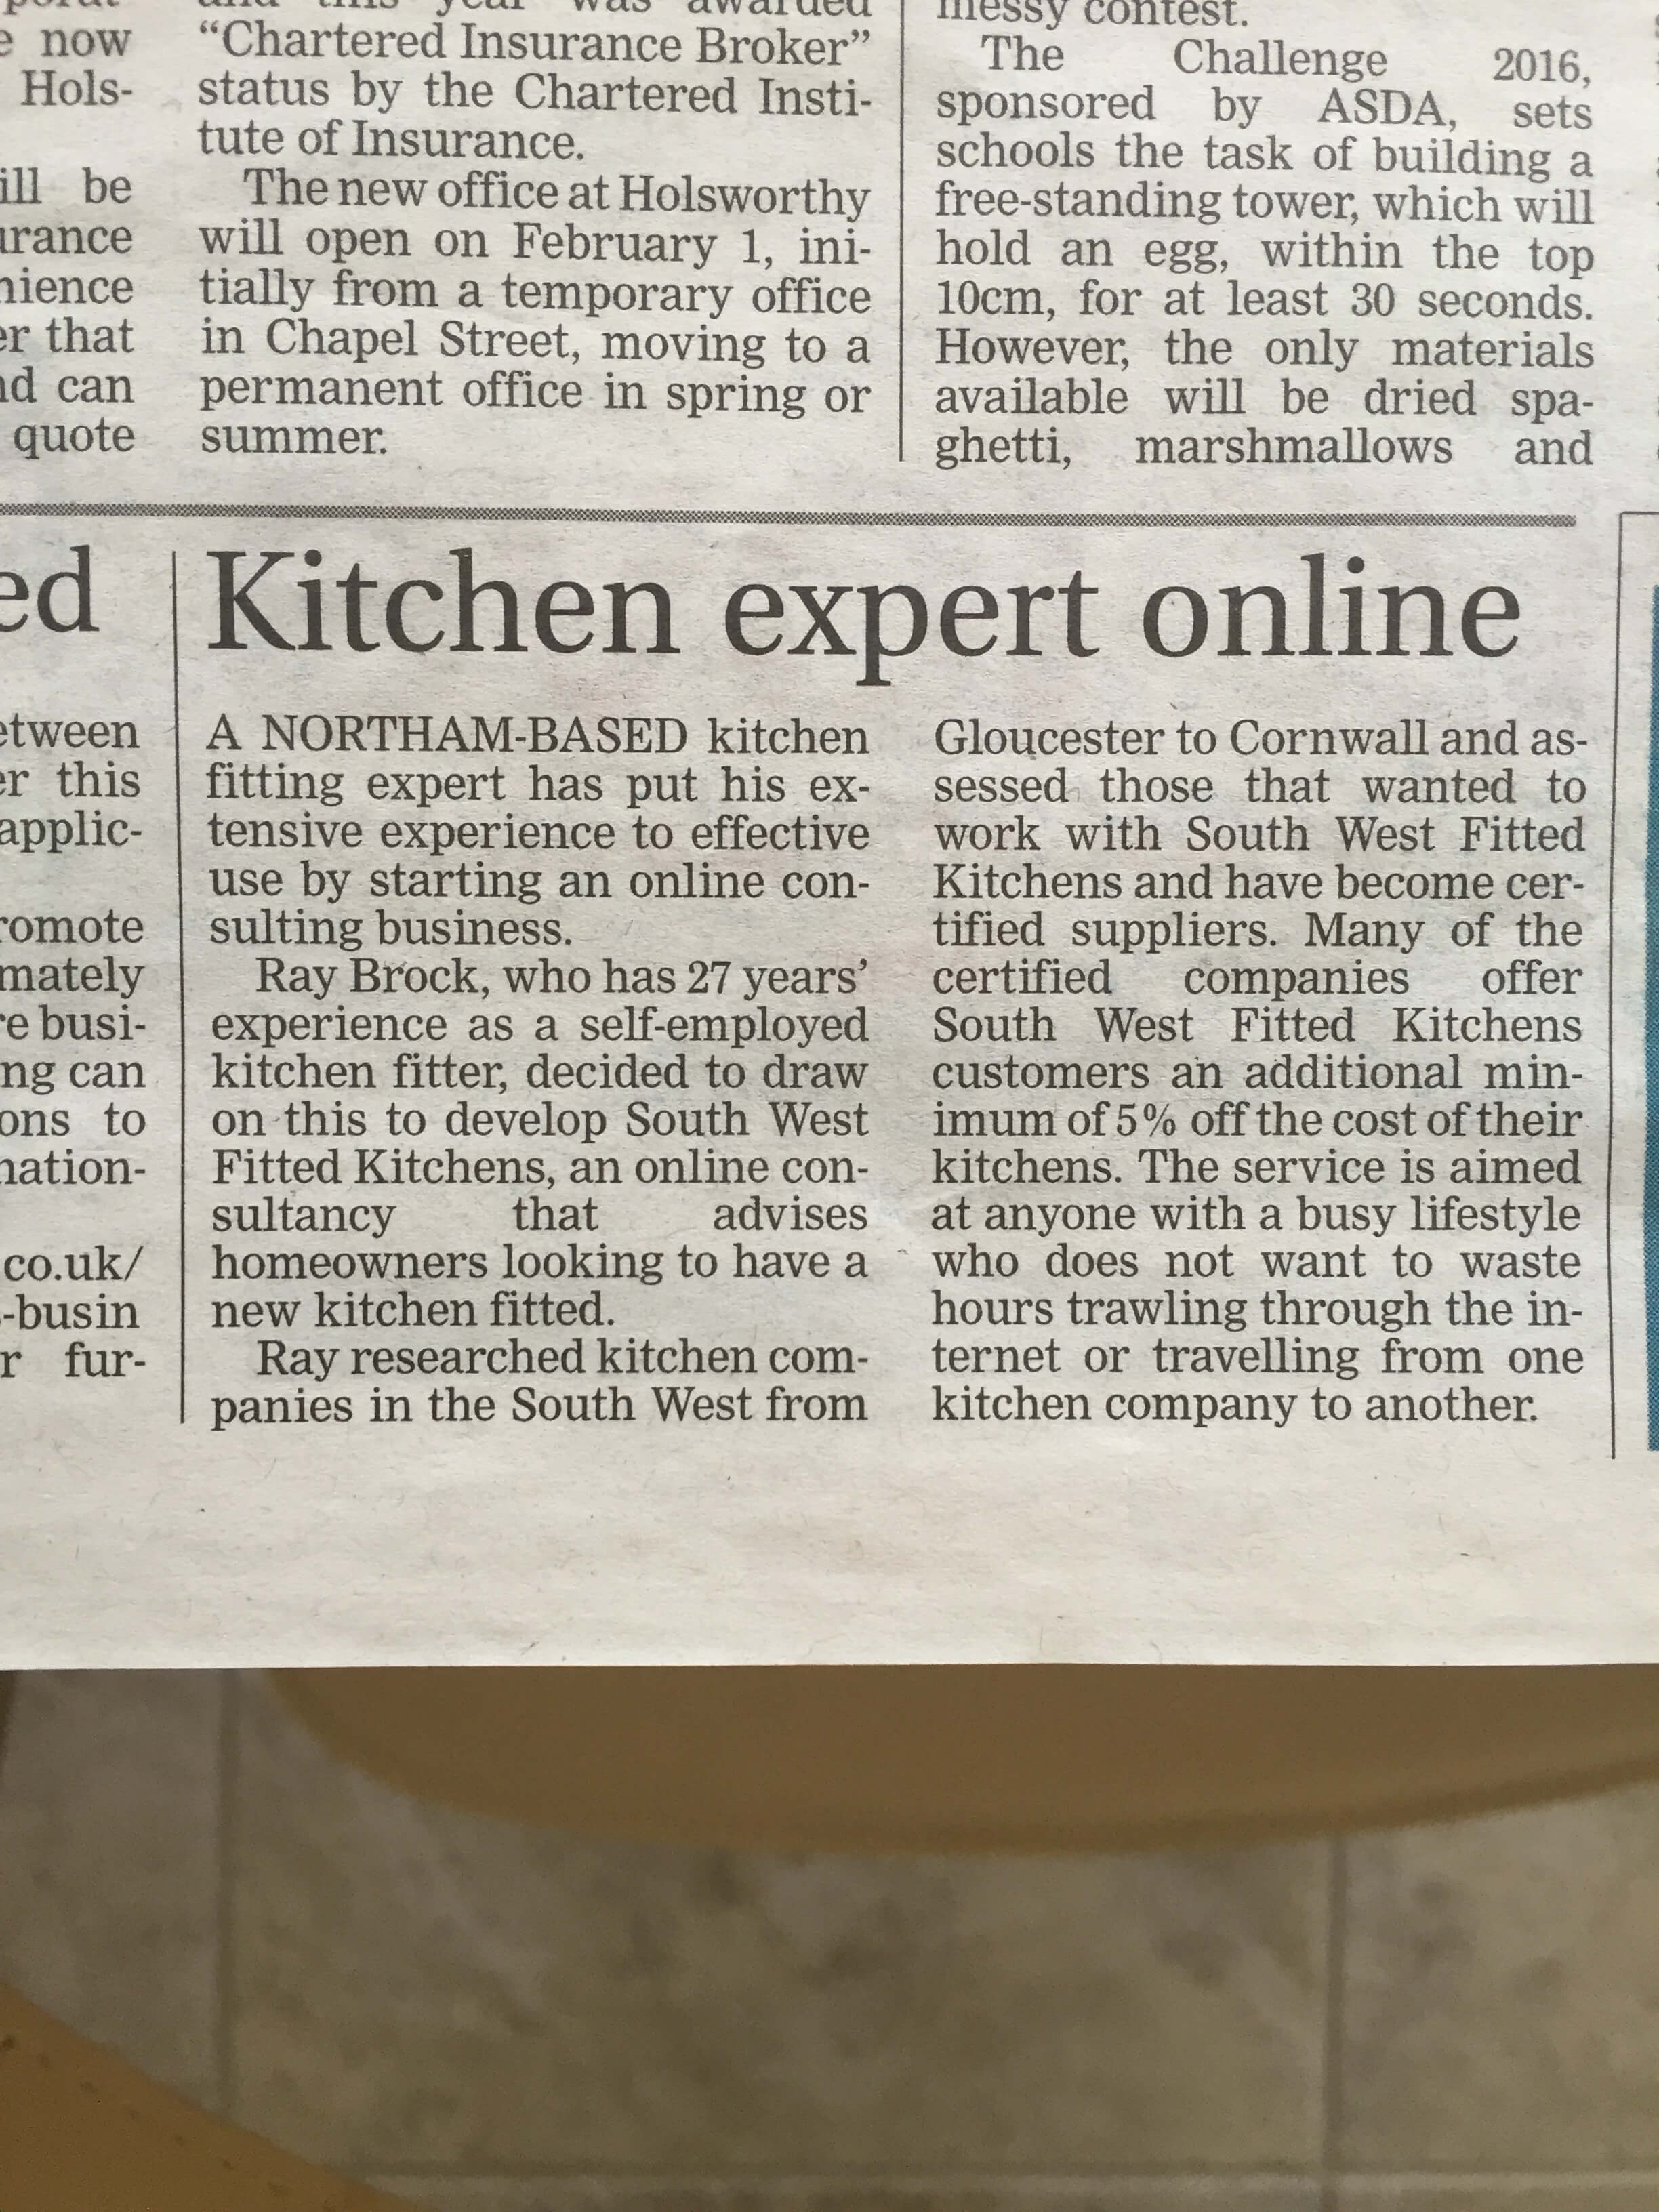 North Devon Journal Article on South West Fitted Kitchens